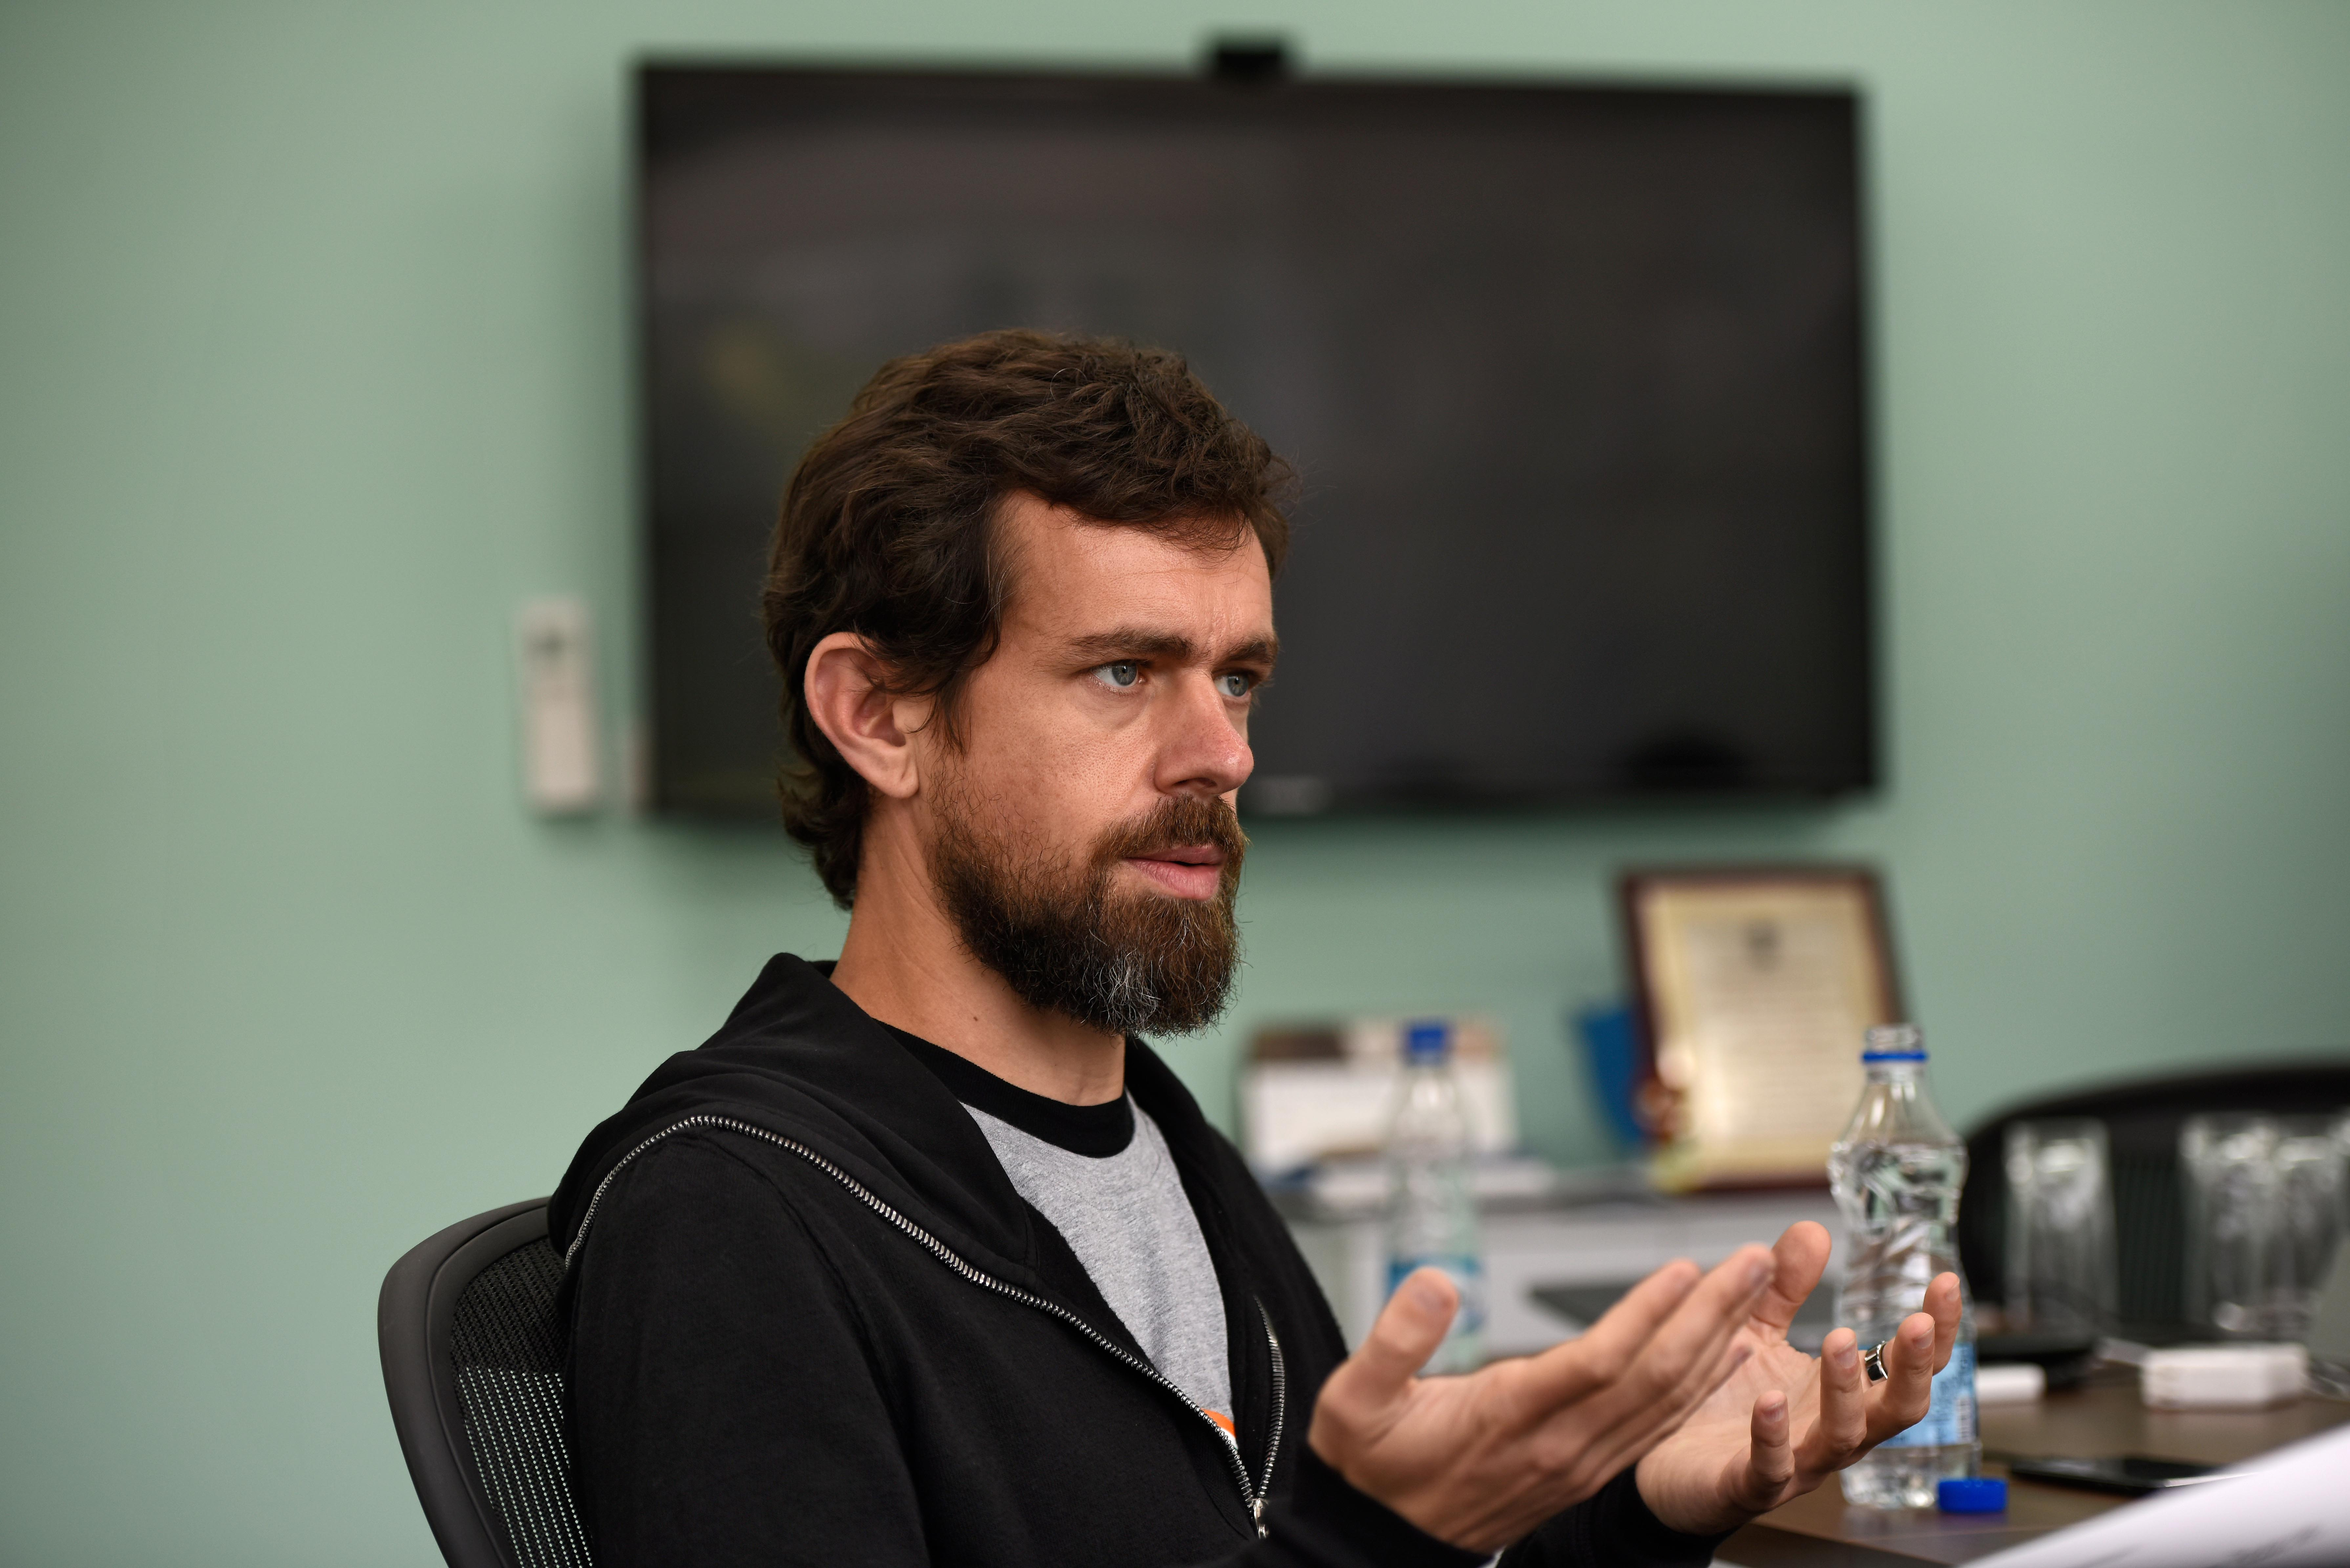 HT Exclusive: Profile Shoot Of Twitter CEO Jack Patrick Dorsey